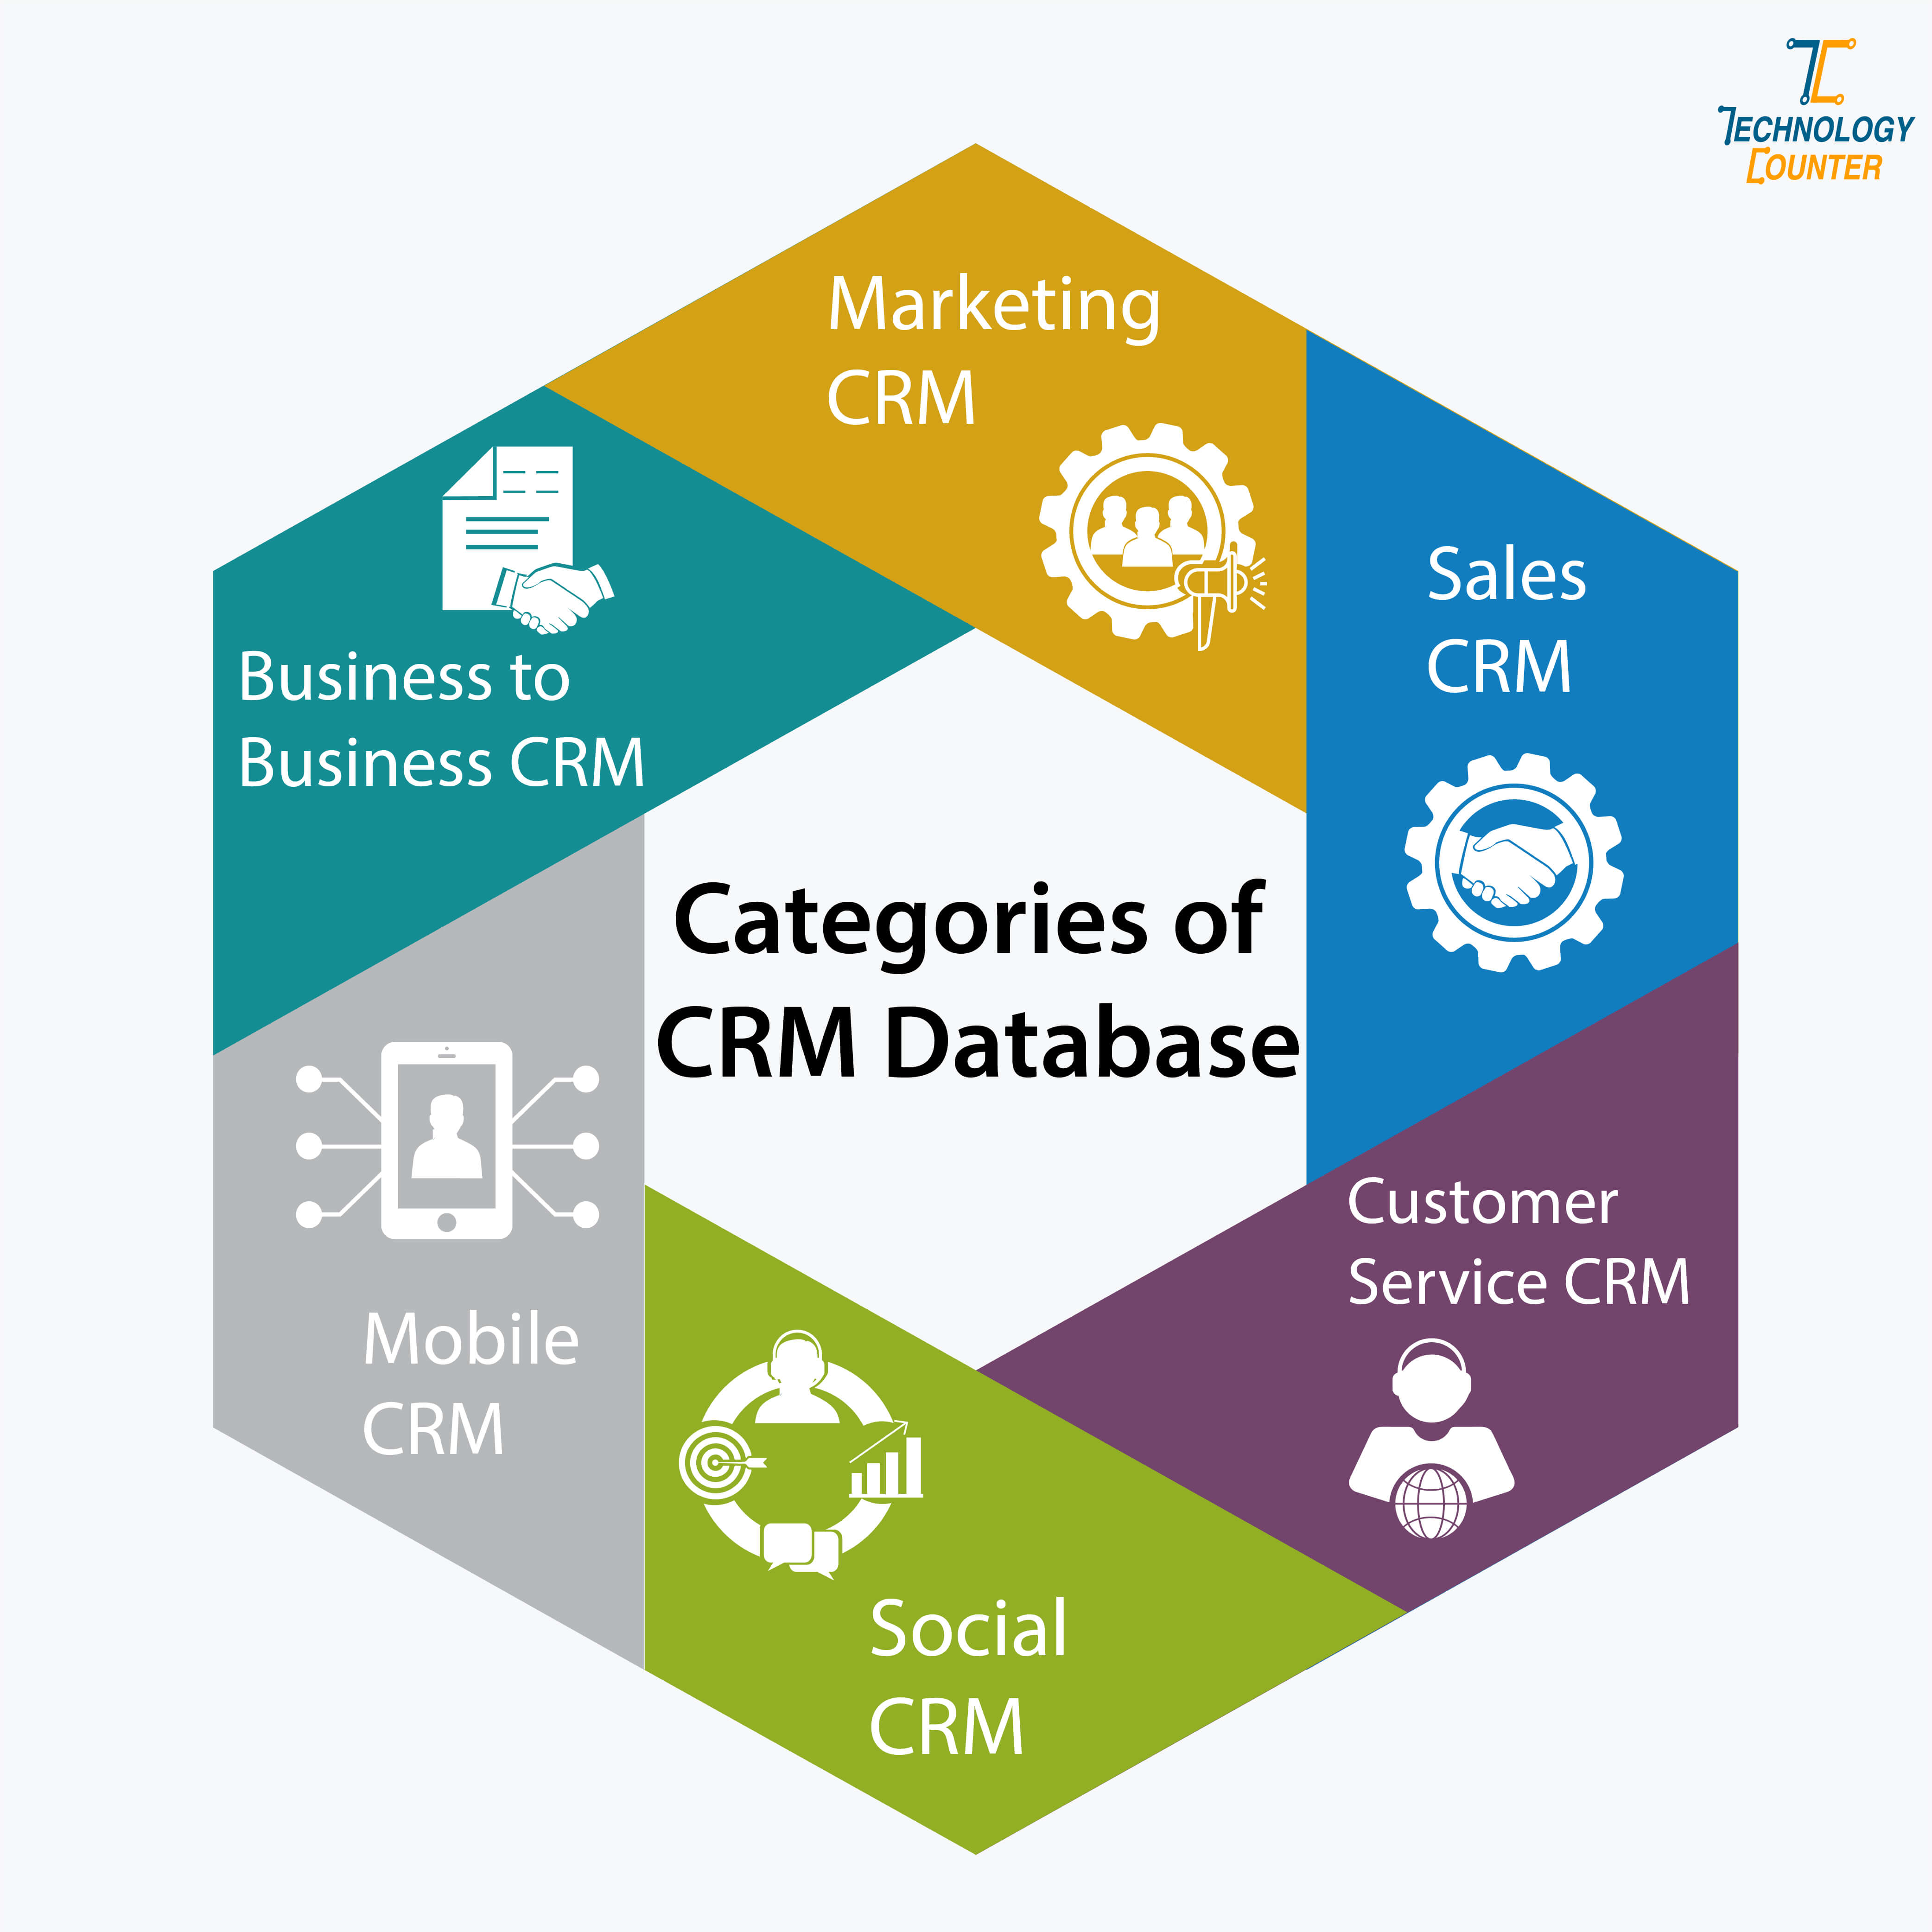 Categories of CRM Database